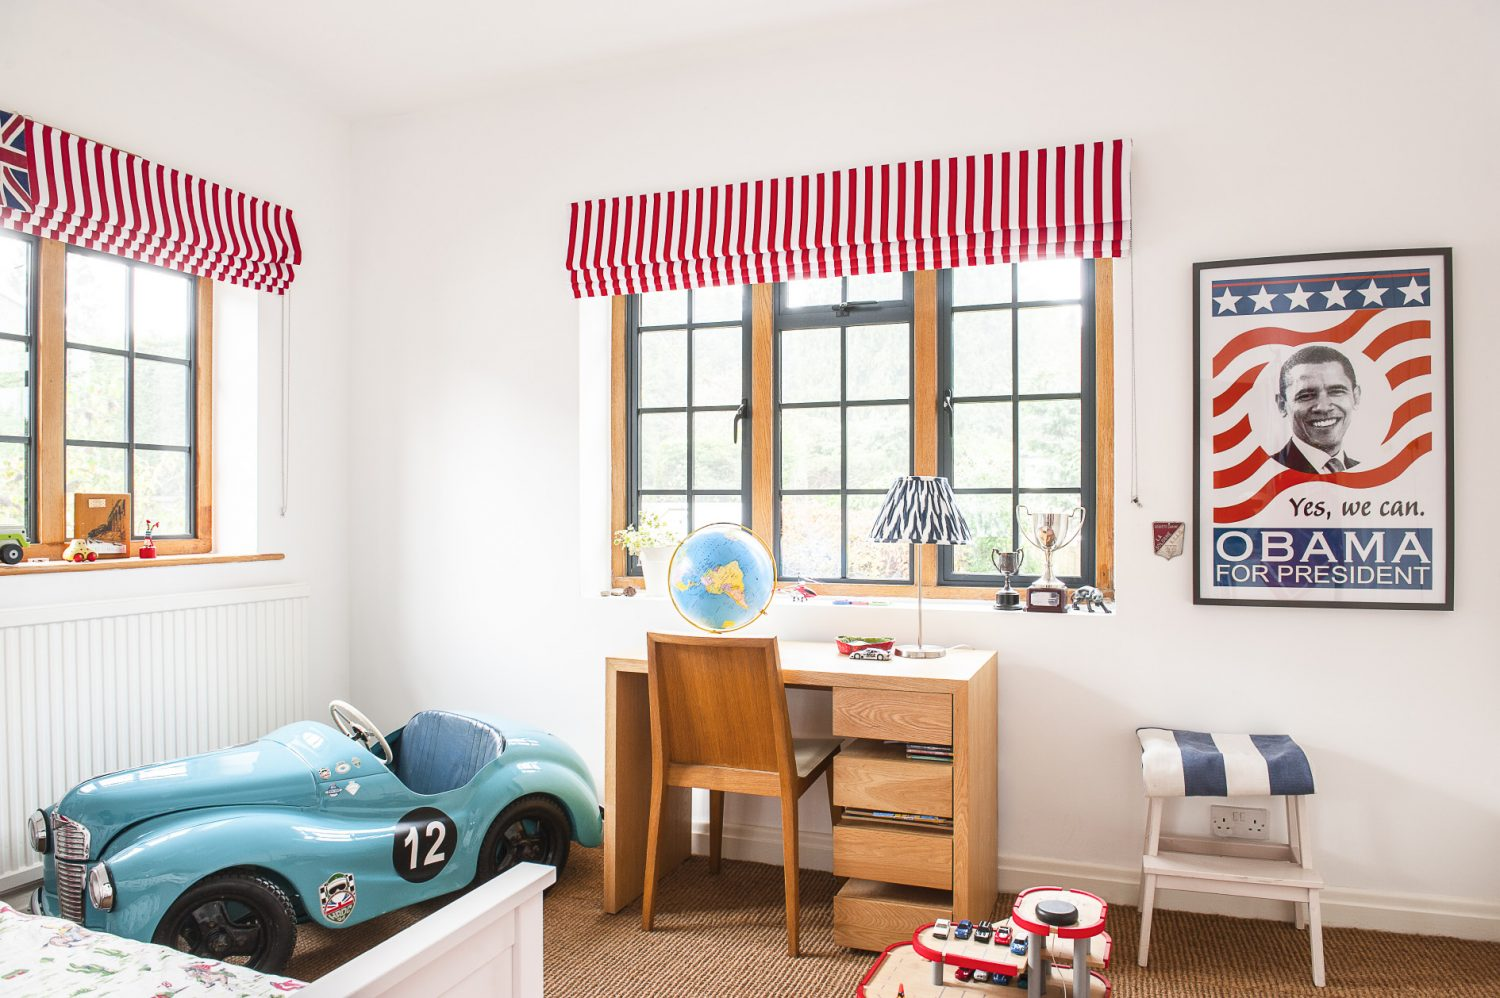 Kate and Jason's son Joe chose most of the items in his room, including the Obama poster